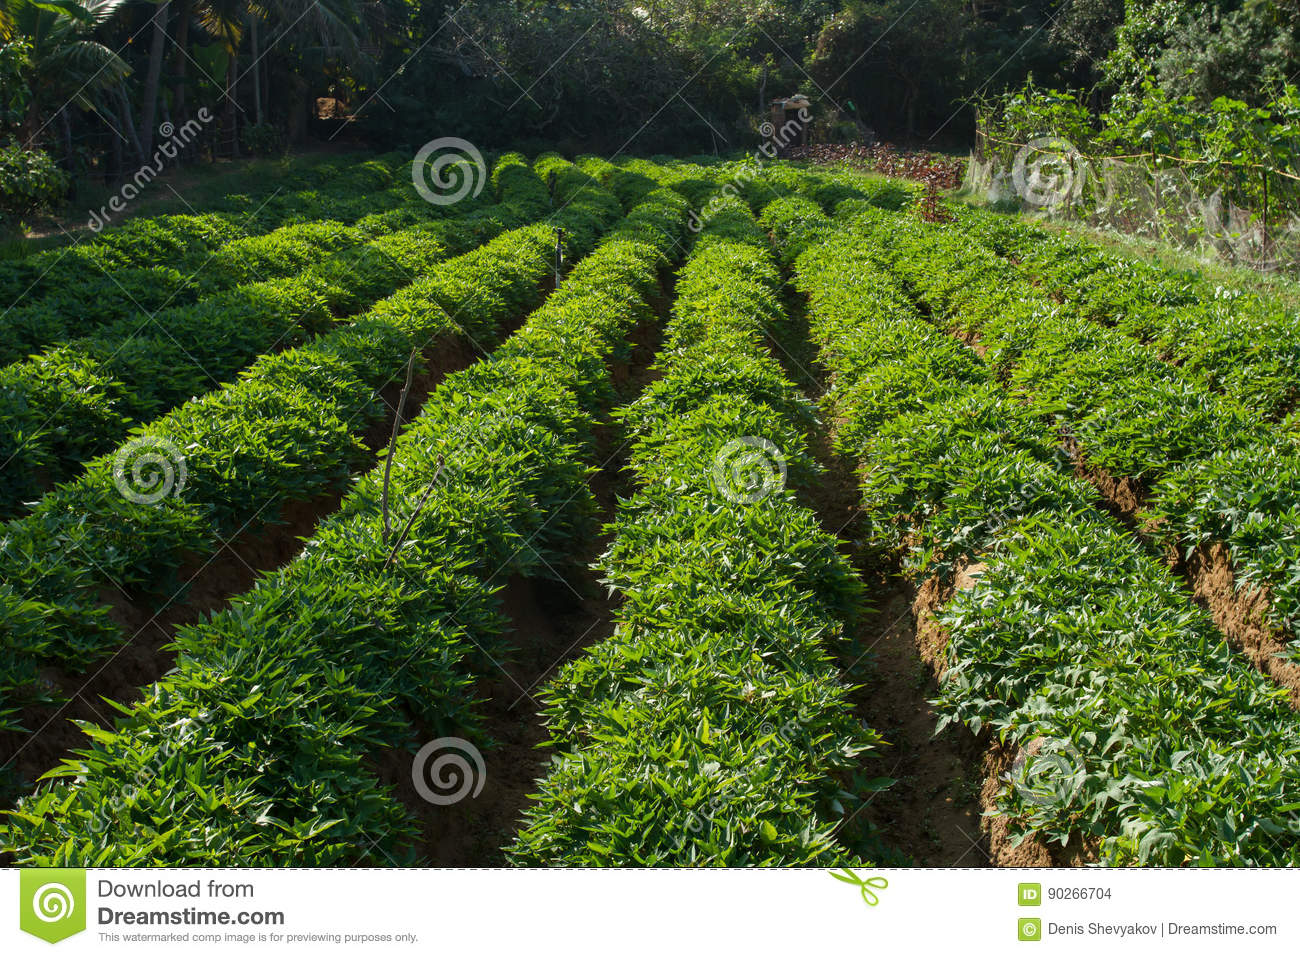 Long Beds With Sweet Potatoes Stock Photo - Image of shoots